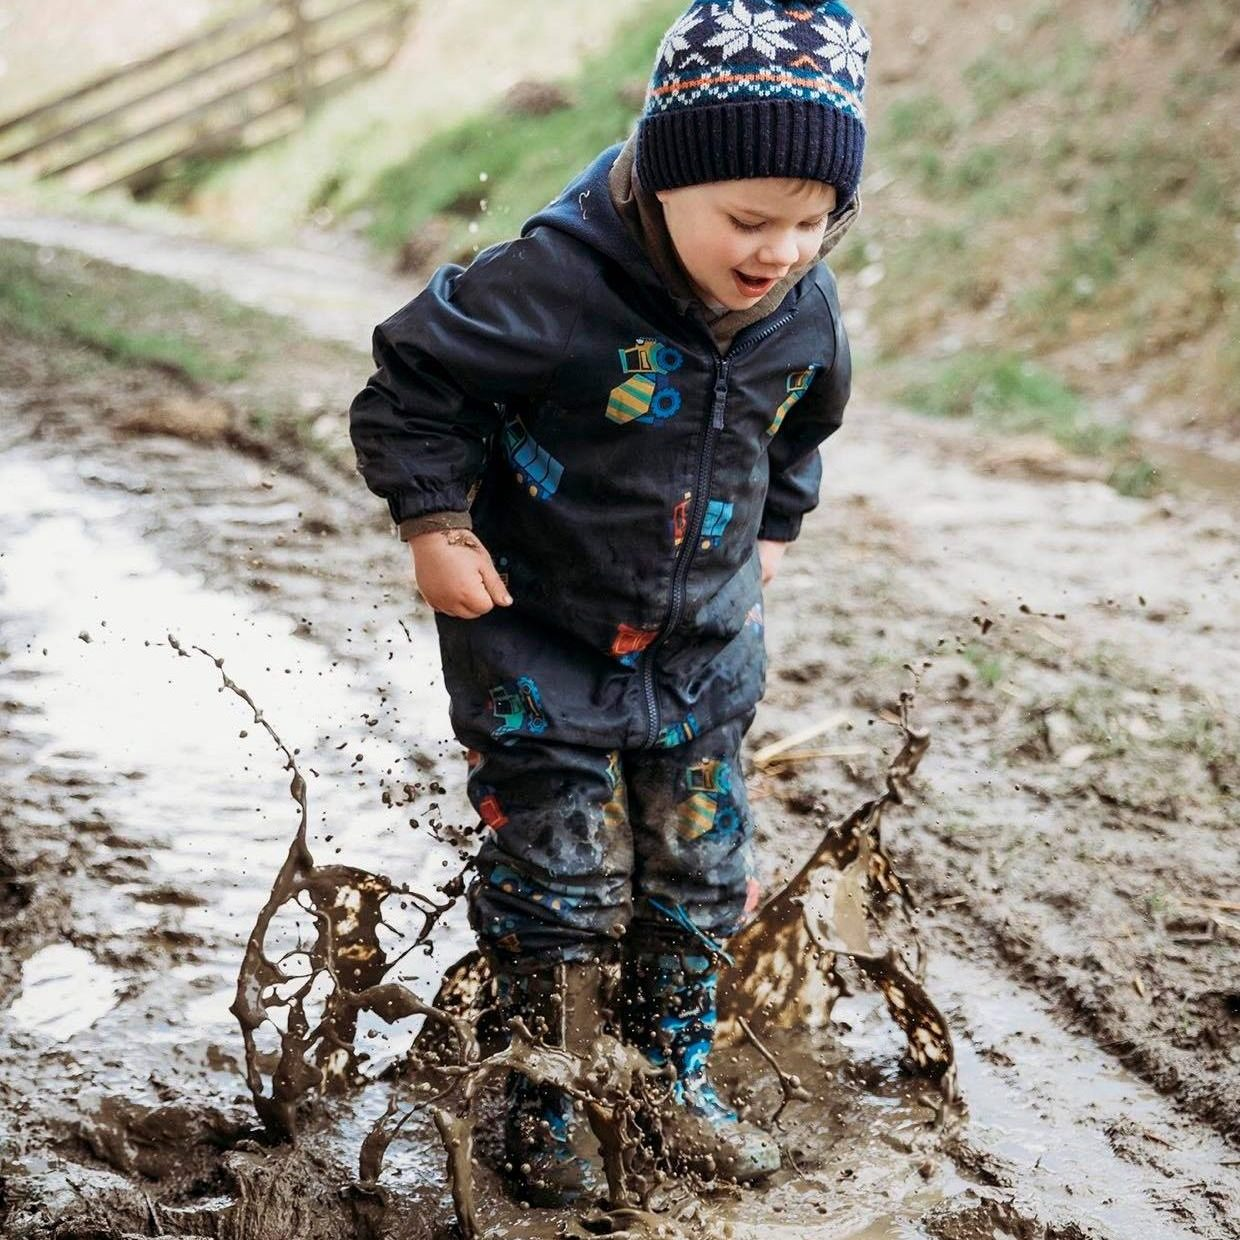 Puddle Jumping at the Treehouse